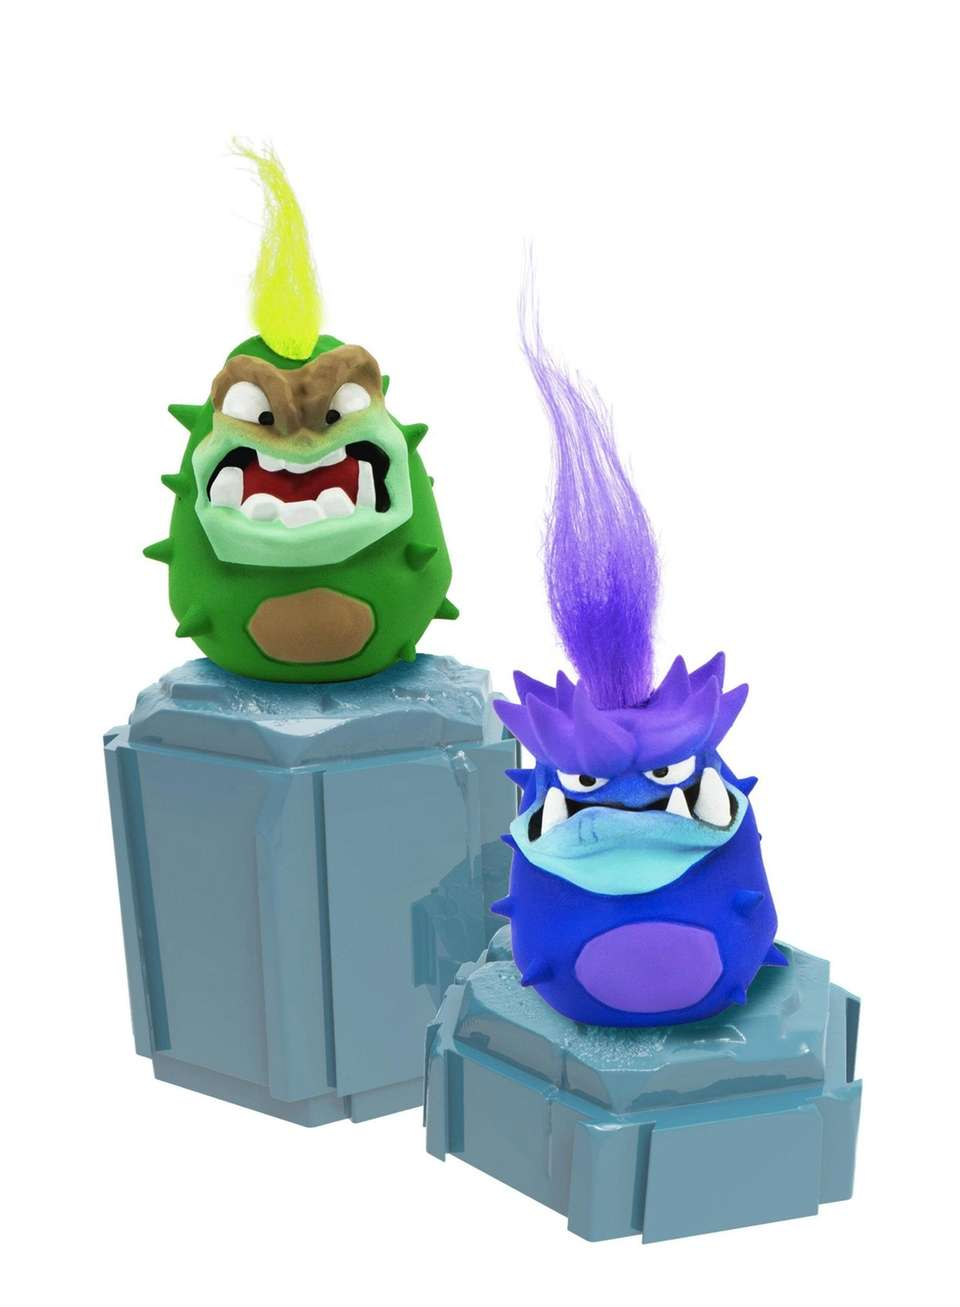 These mini versions of the popular Grumblies characters